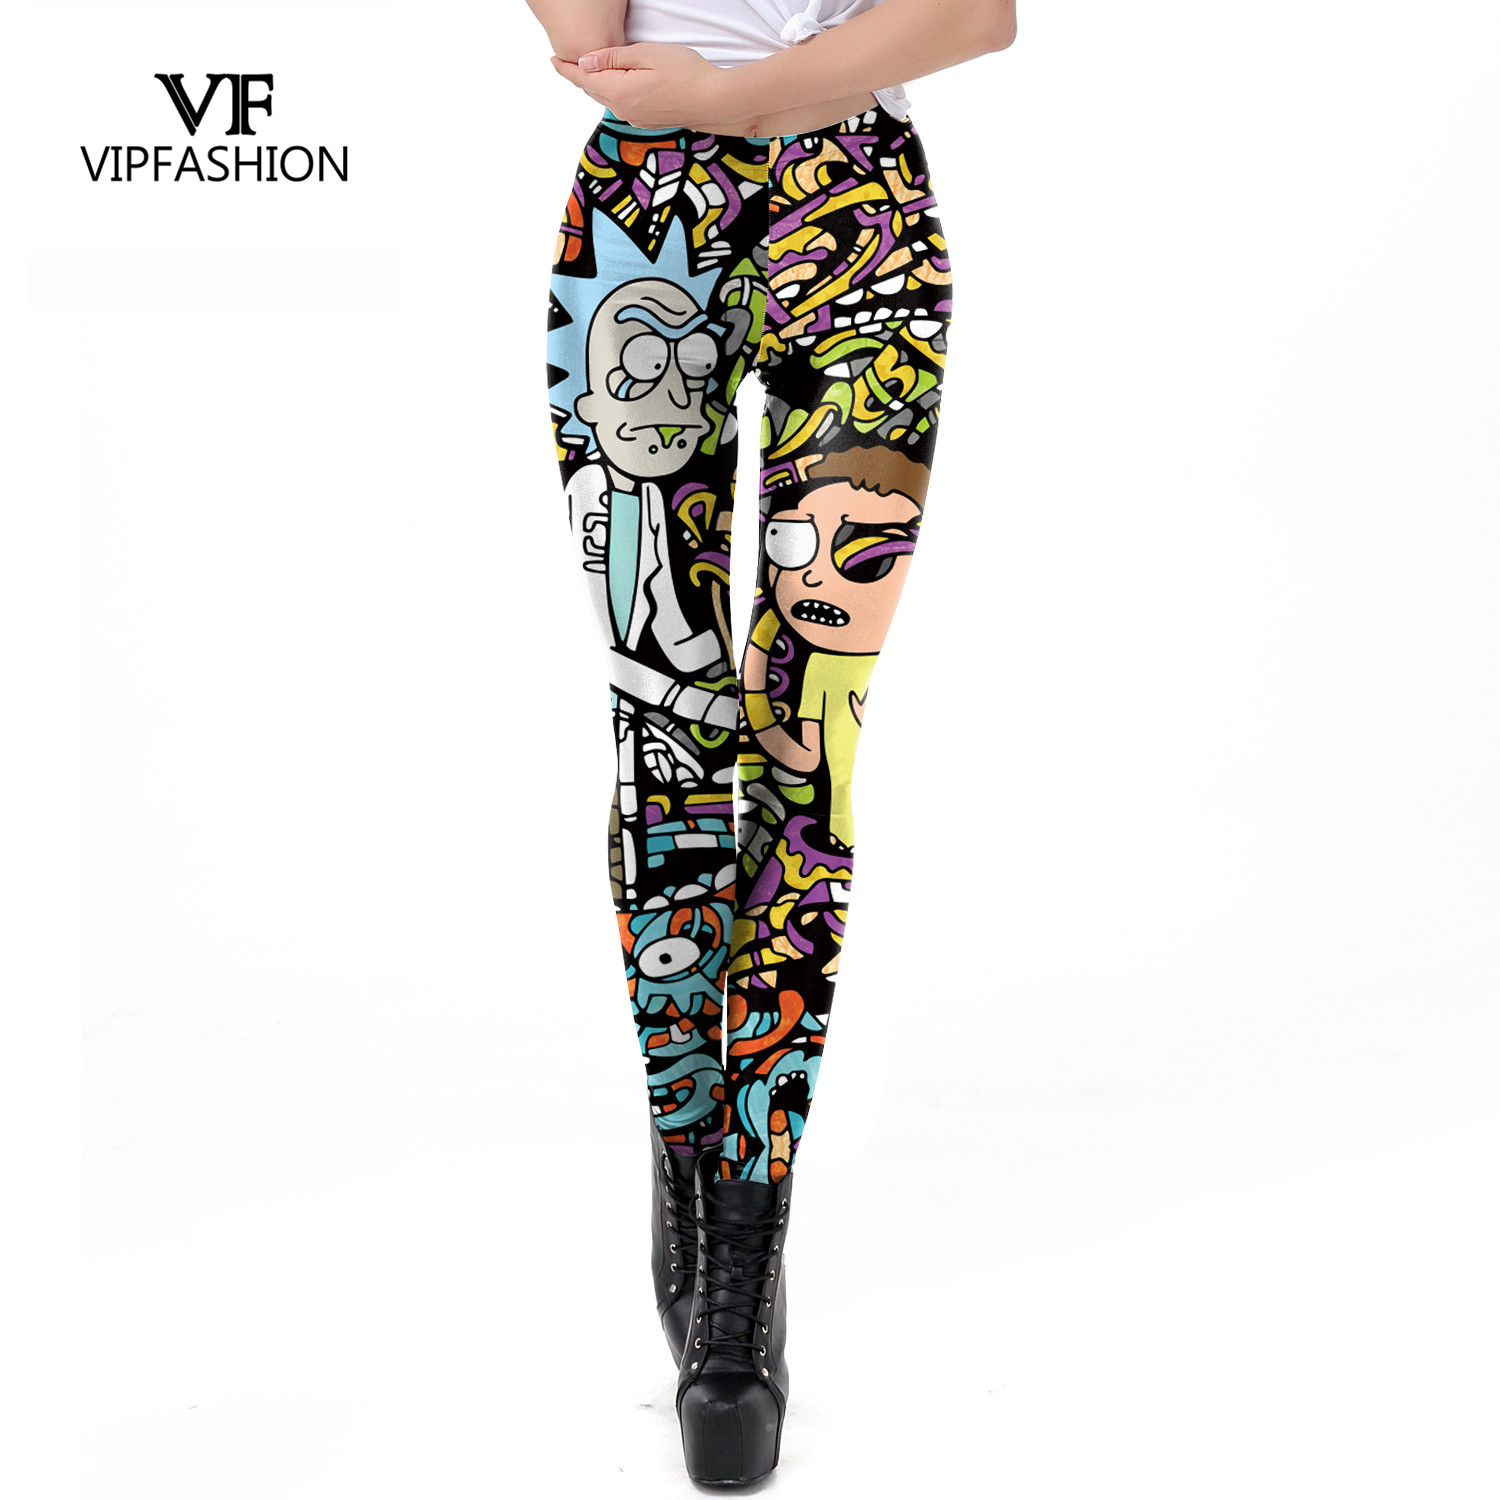 VIP FASHION 2019 New Body Building Pants Women Rick And Morty Printed Leggings Workout Cartoon Leggin